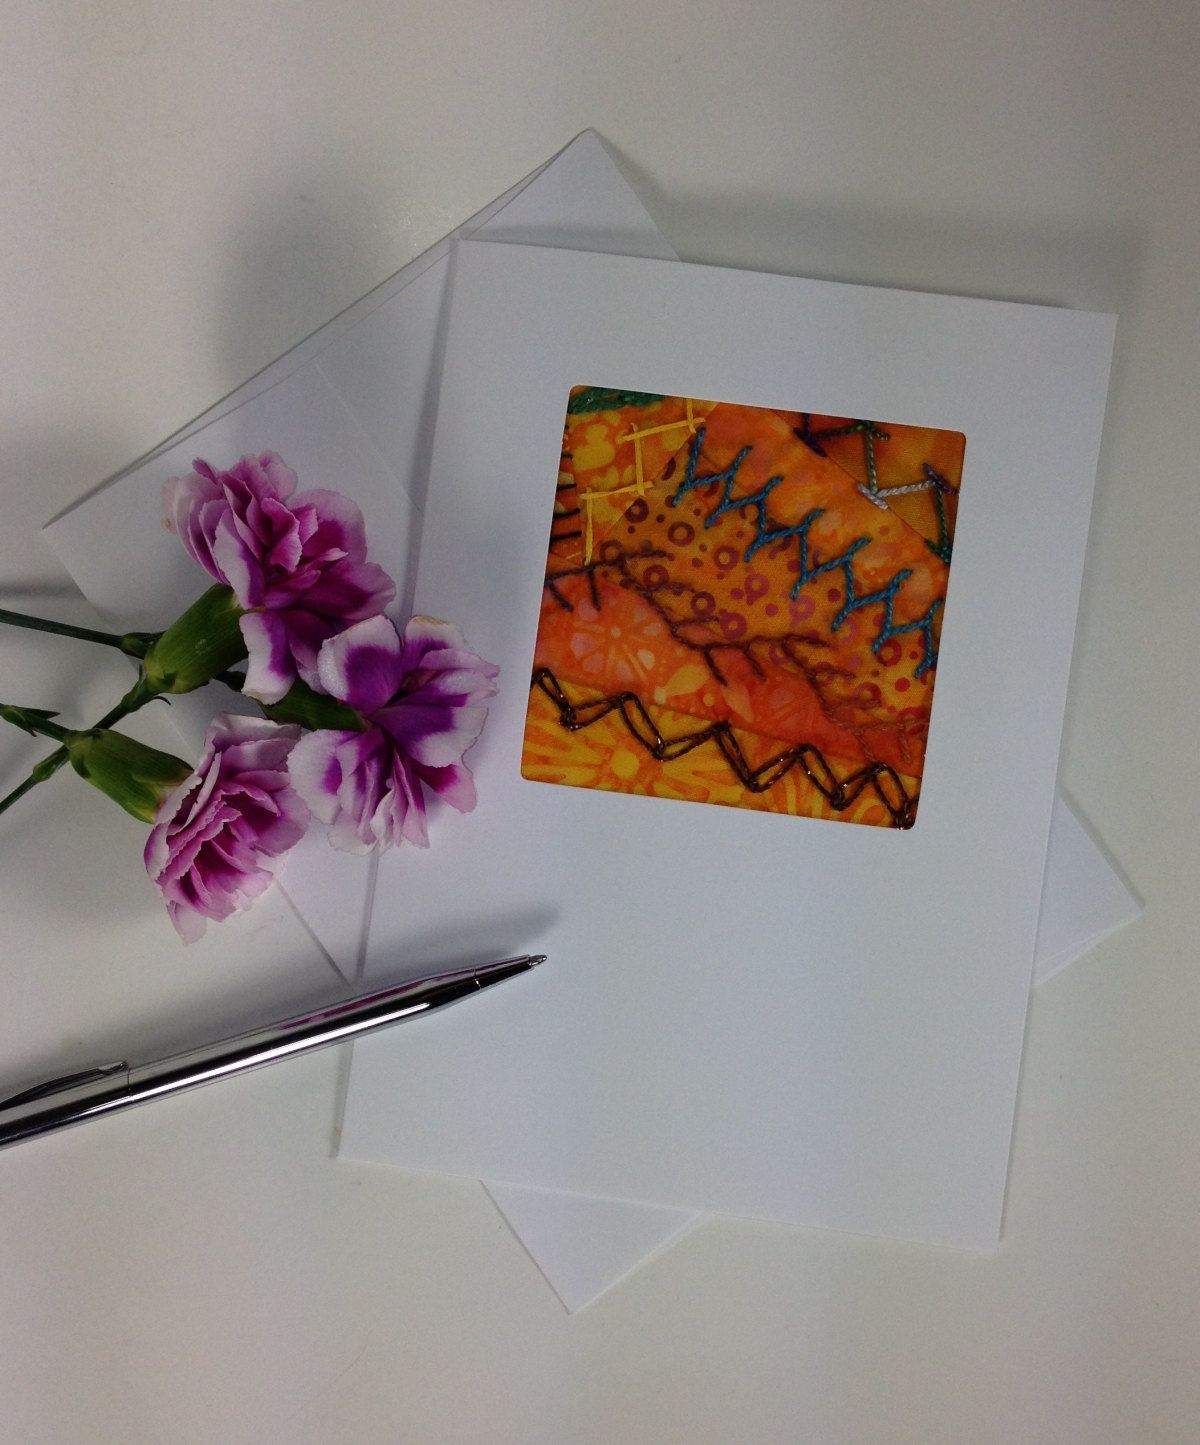 Hand embroidered greeting card crazy quilt greeting card fiber hand embroidered greeting card crazy quilt greeting card fiber art fabric greeting card orange batik fabric card handmade card birthday kristyandbryce Image collections